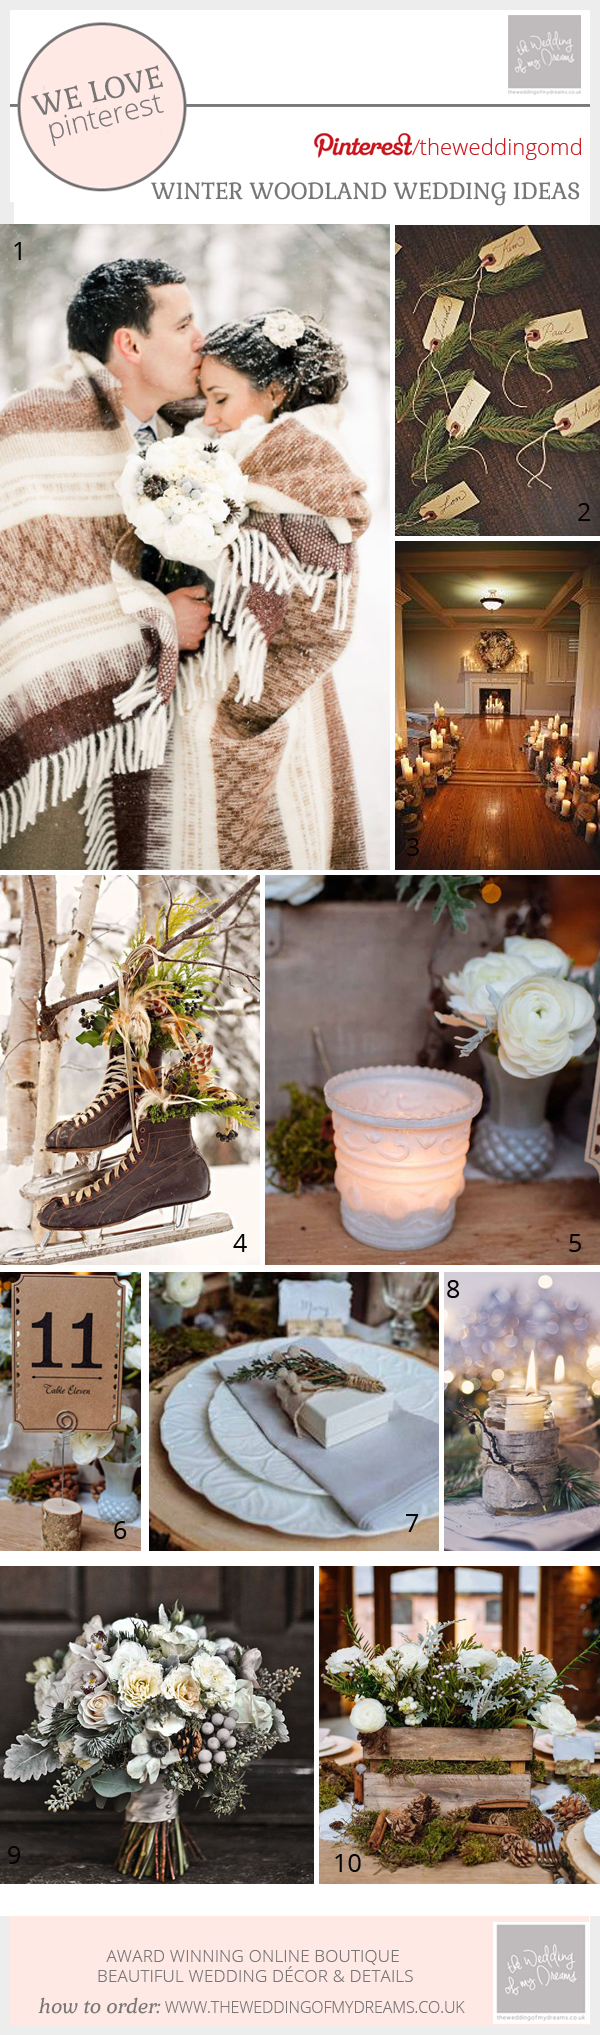 WINTER WOODLAND WEDDING IDEAS AND DECORATIONS